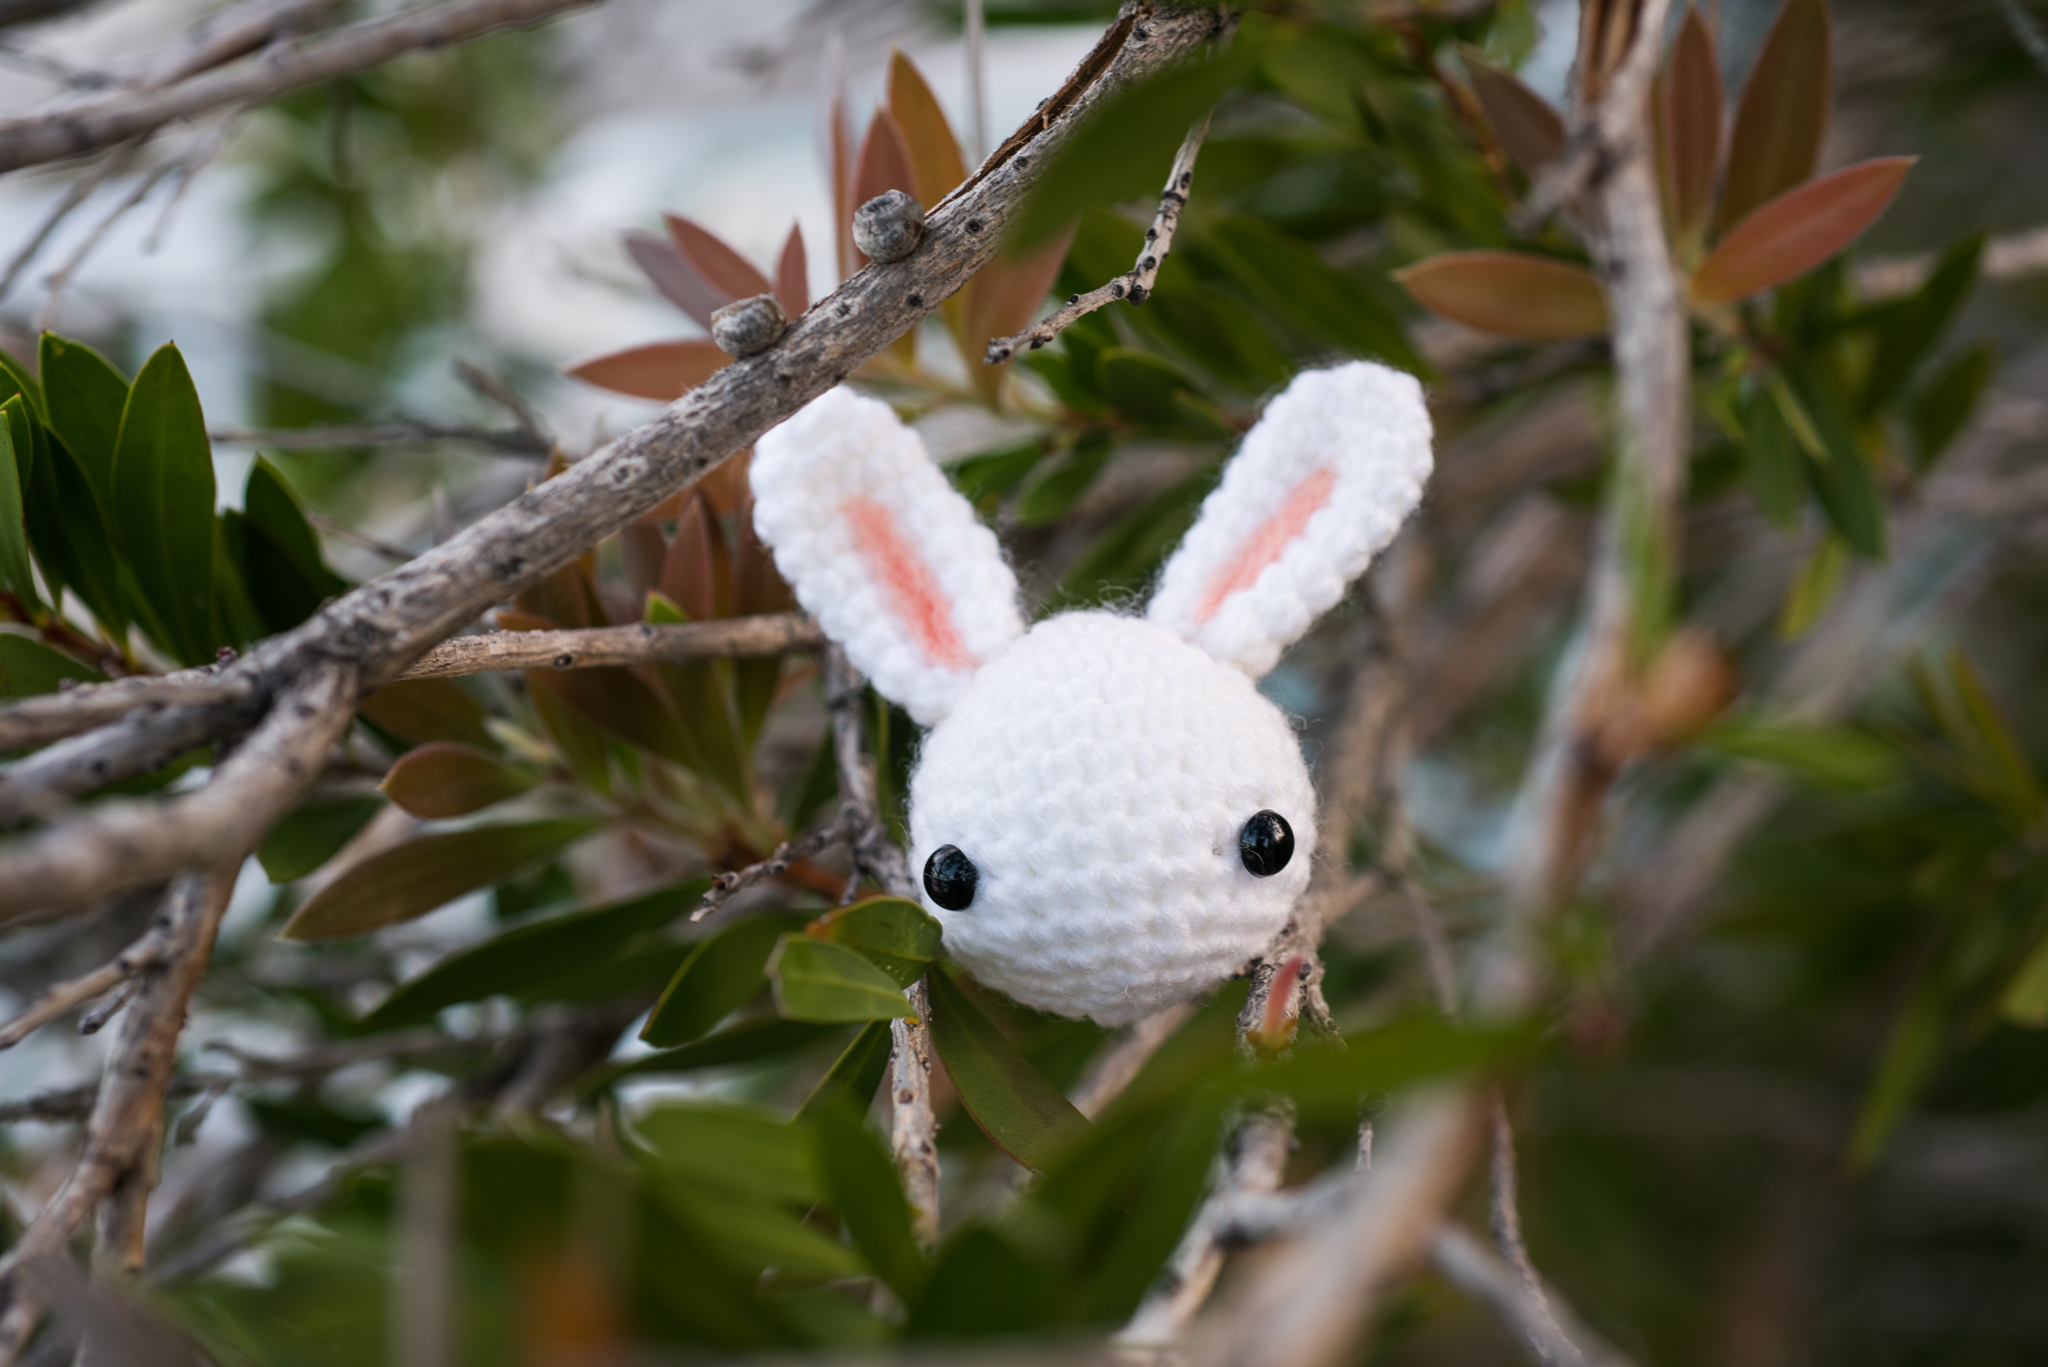 tiny rabbit hole - toki the bunny amigurumi white rabbit in the trees